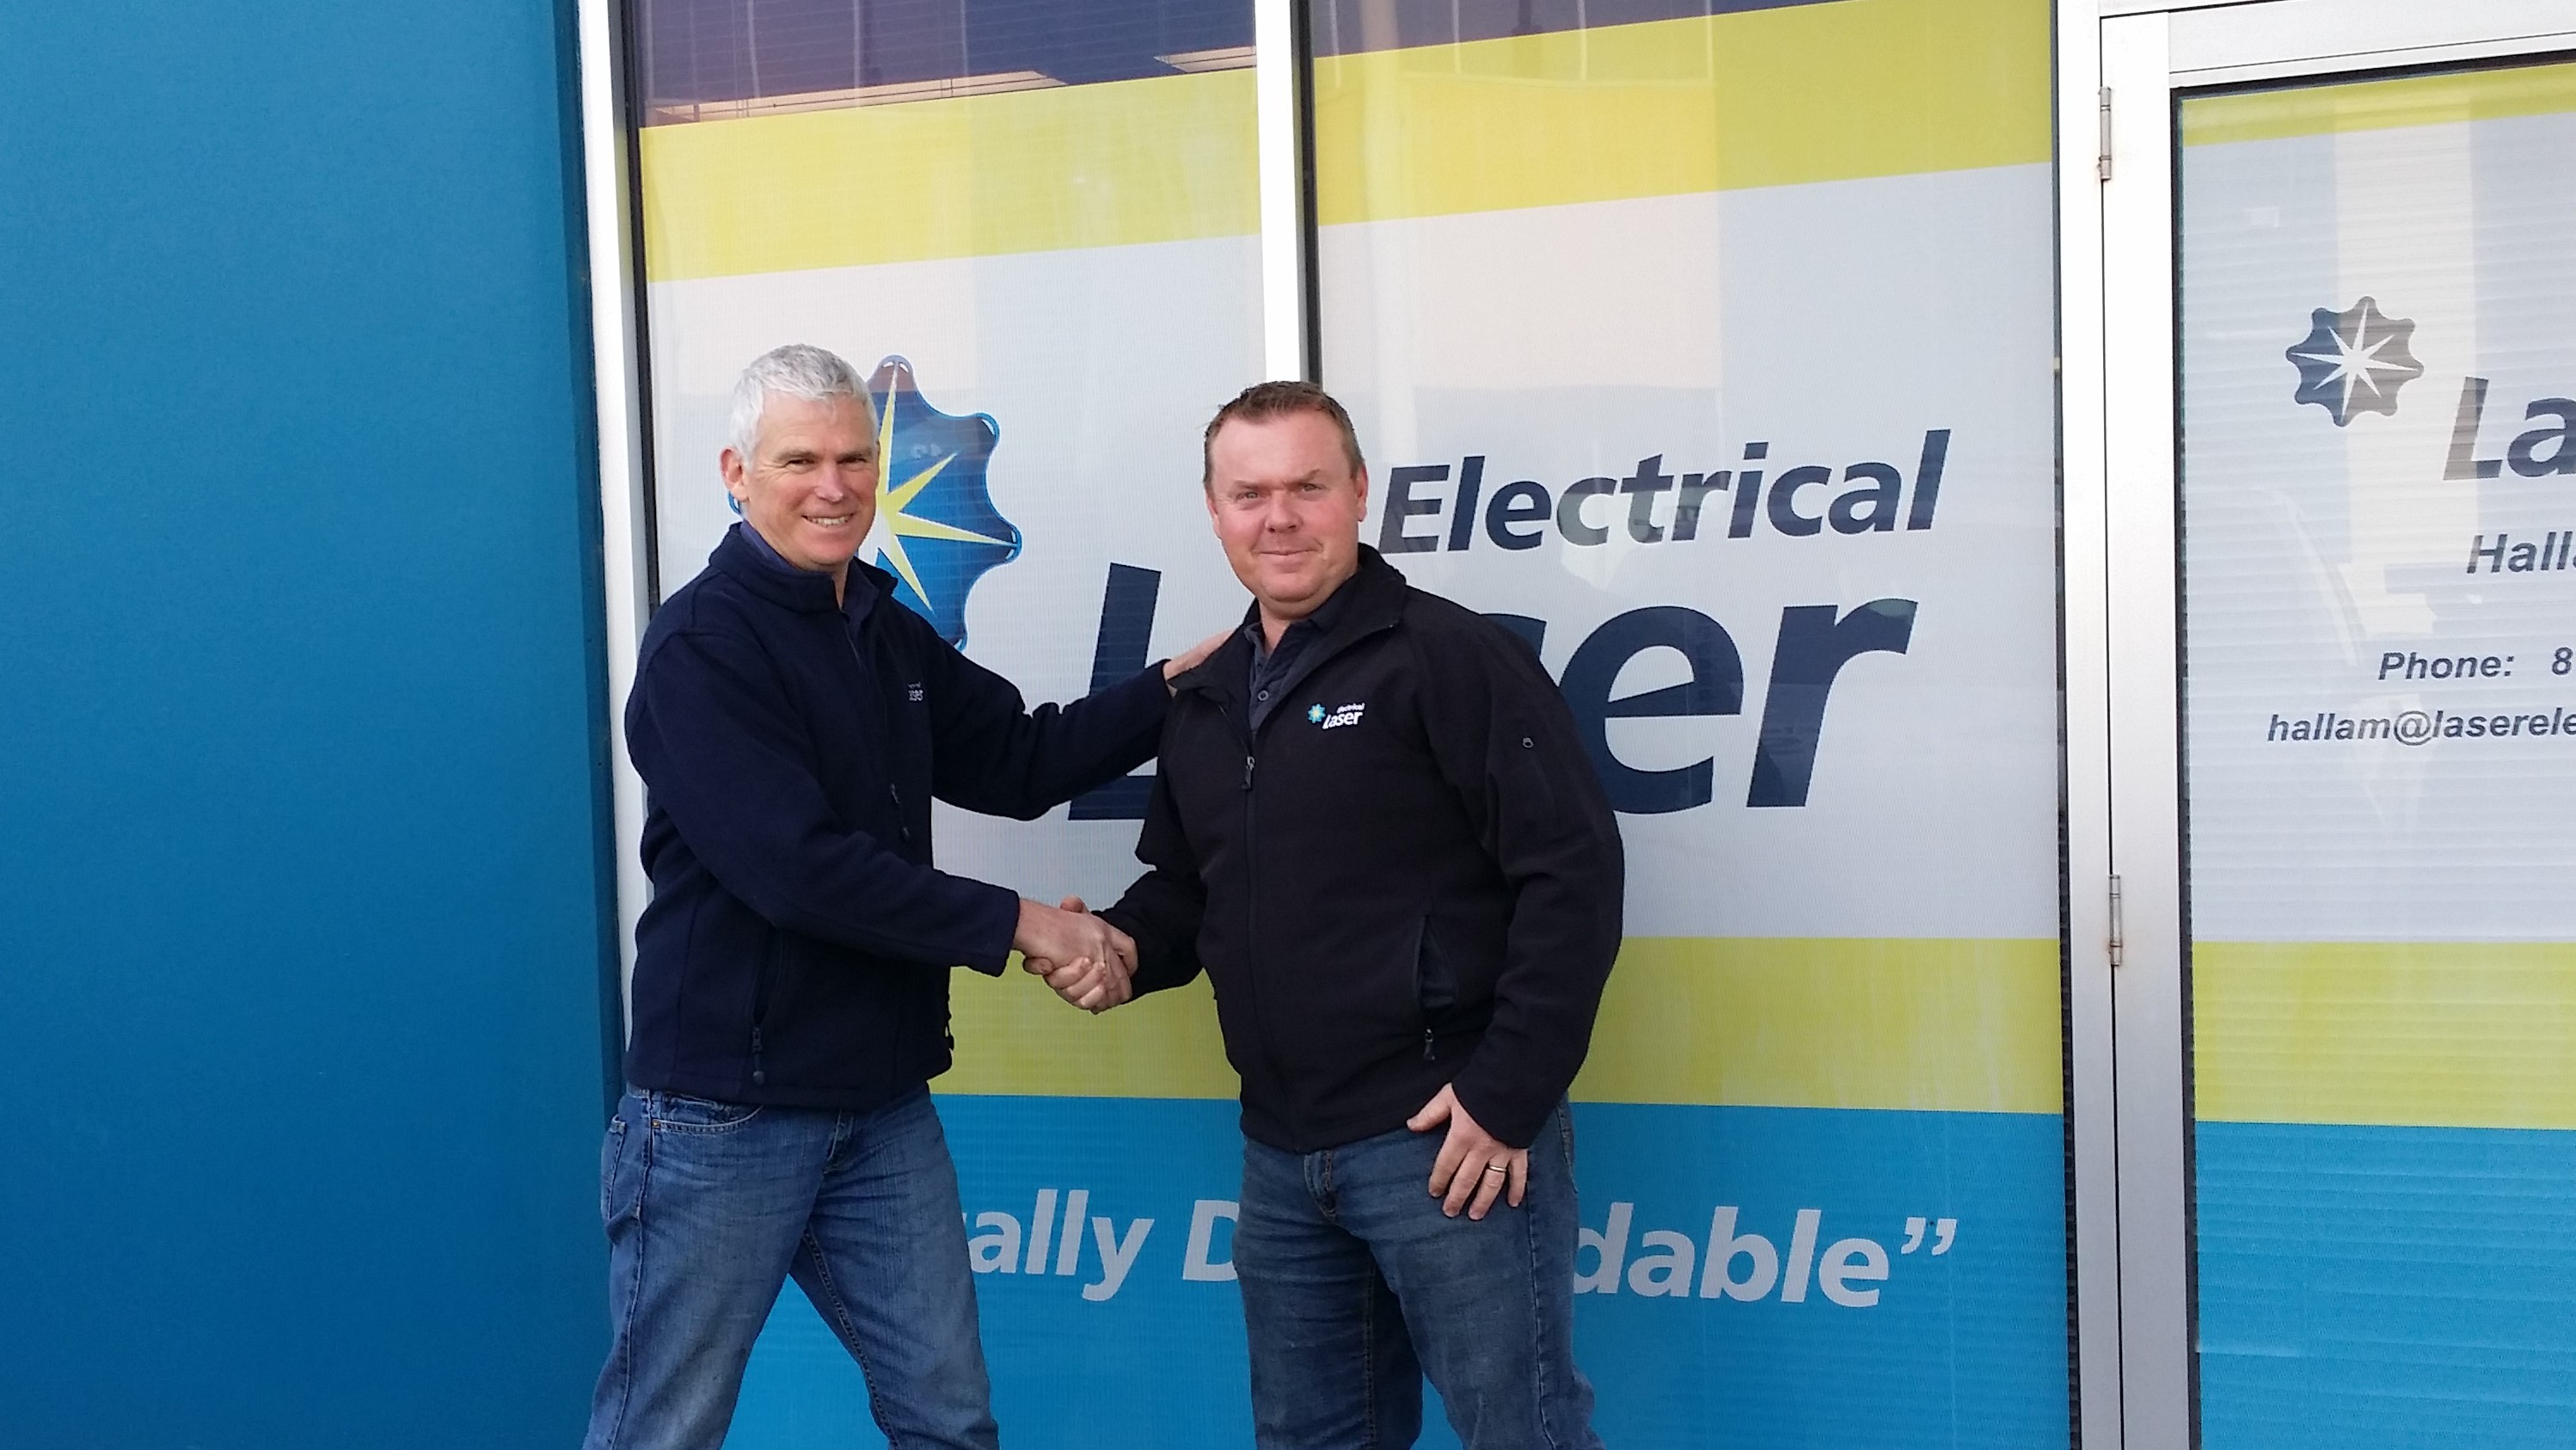 New Owners for Laser Electrical Hallam